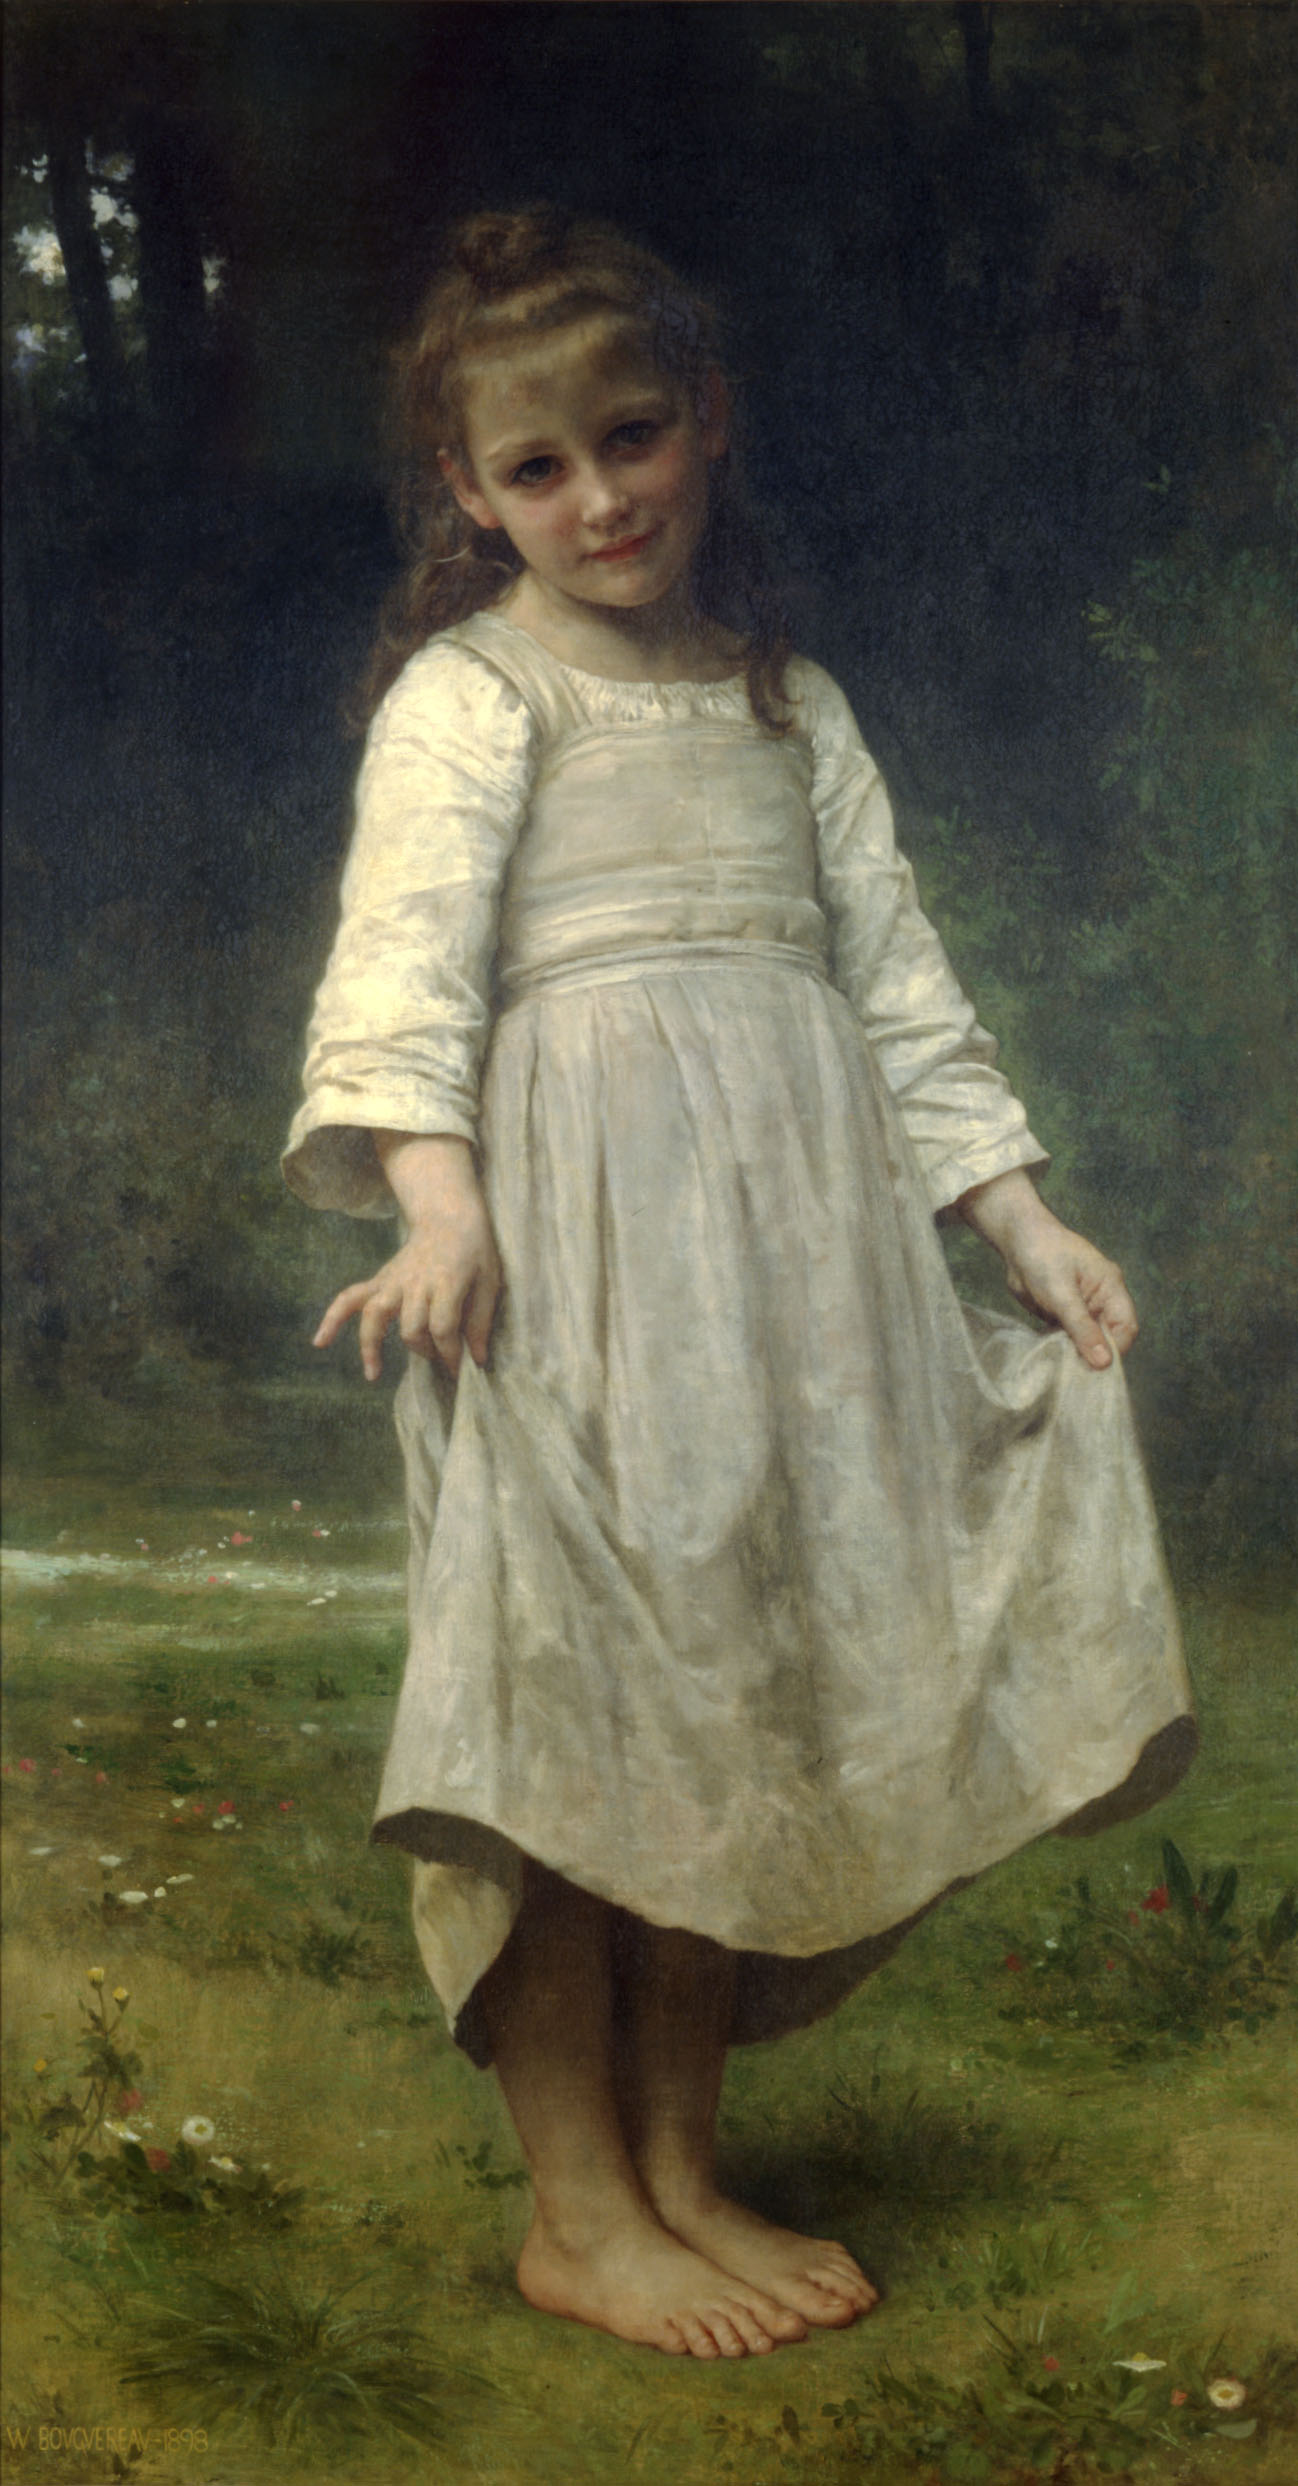 William Bouguereau (1825-1905)   La révérence [The curtsey]  Oil on canvas, 1898  54 1/4 x 29 1/4 inches (138 x 74.5 cm)  Private collection